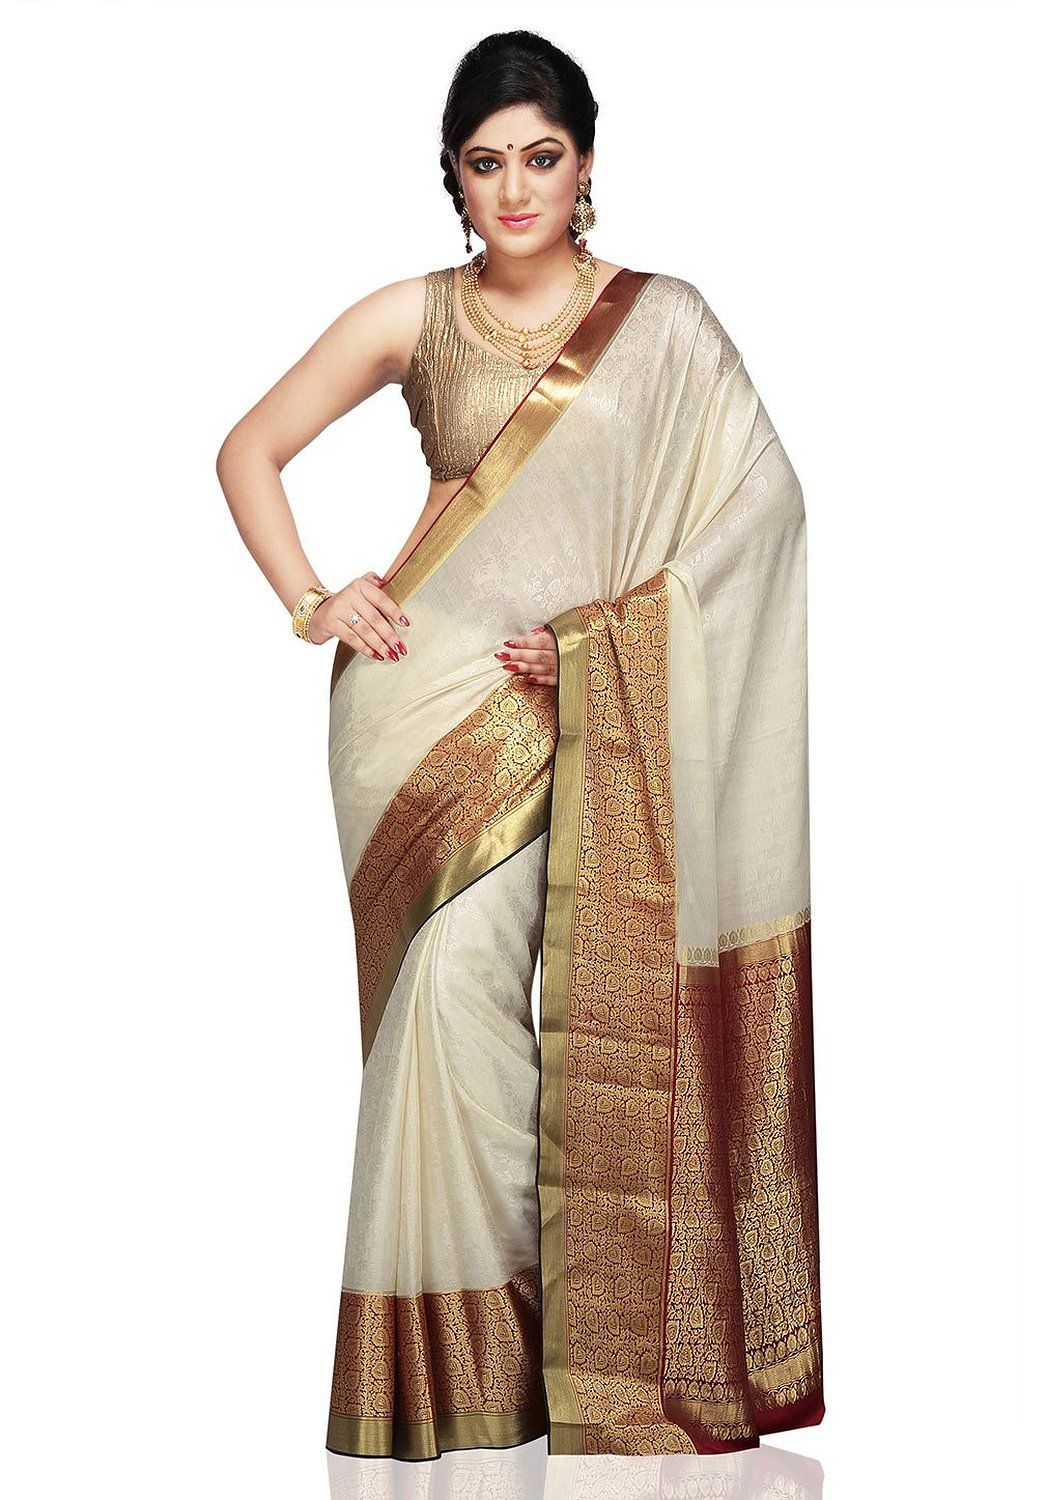 28bbabf2af9dff Utsav Fashion Women s Off White and Maroon Pure Mysore Silk Saree with  Blouse  Amazon